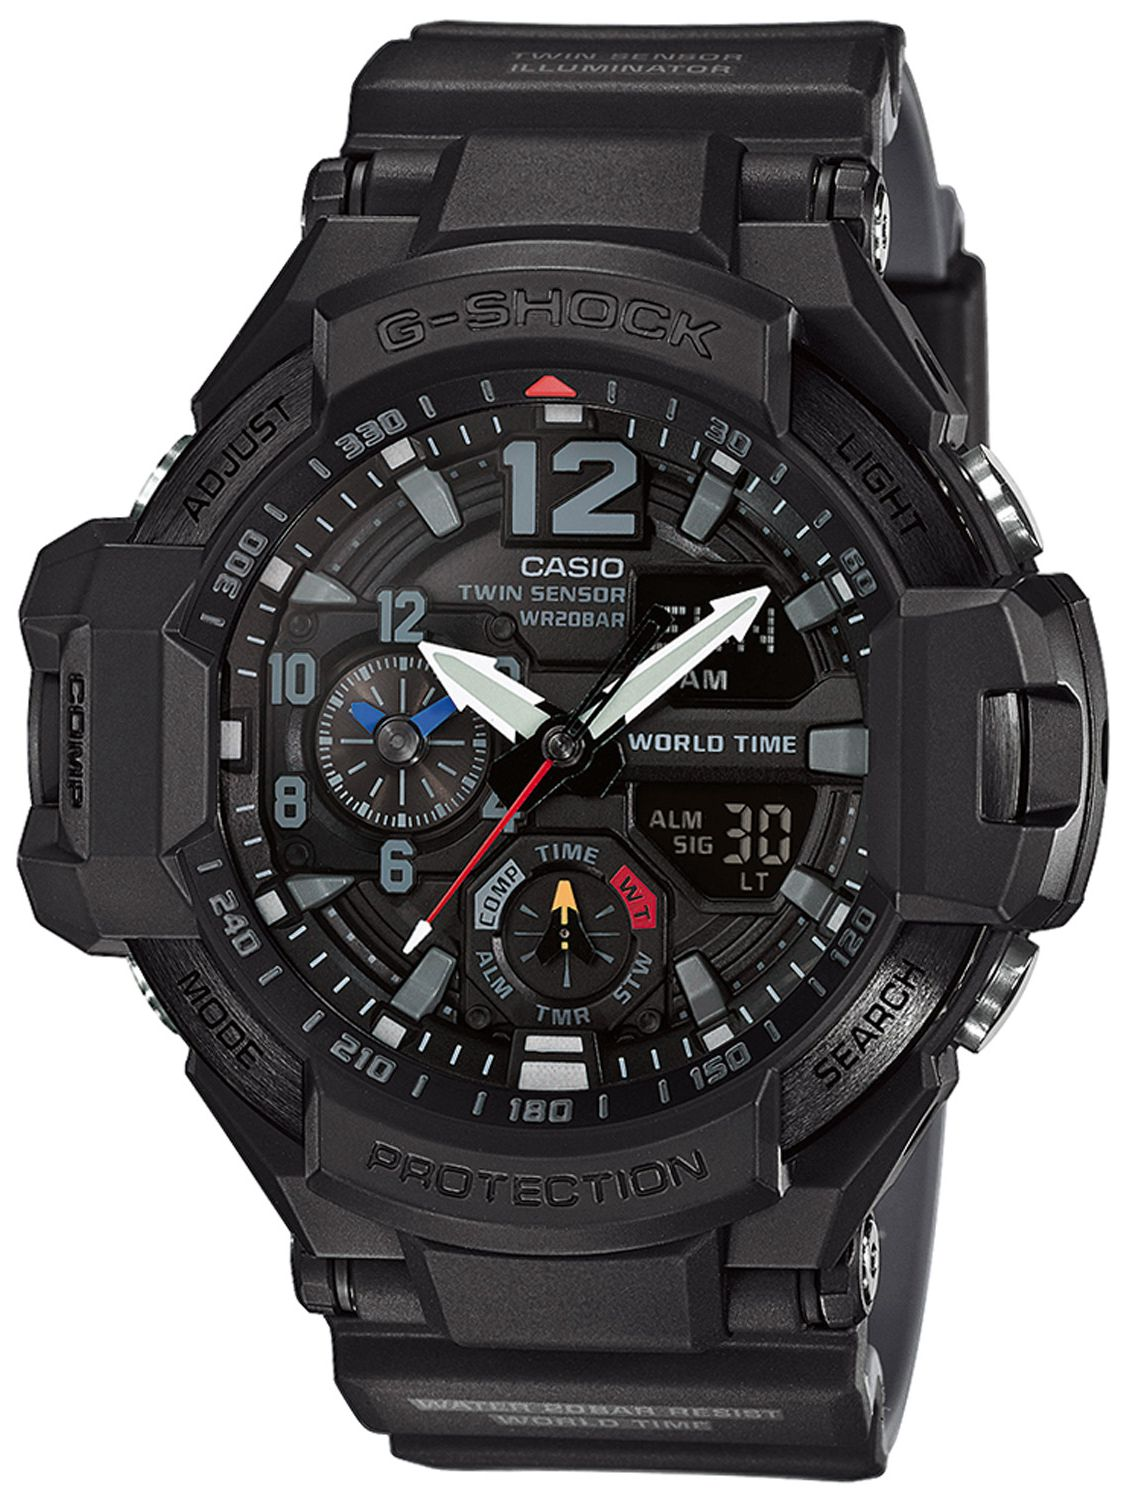 f02807207122 Casio GA-1100-1A1ER G-Shock Mens Watch Gravitymaster Image 1 ...